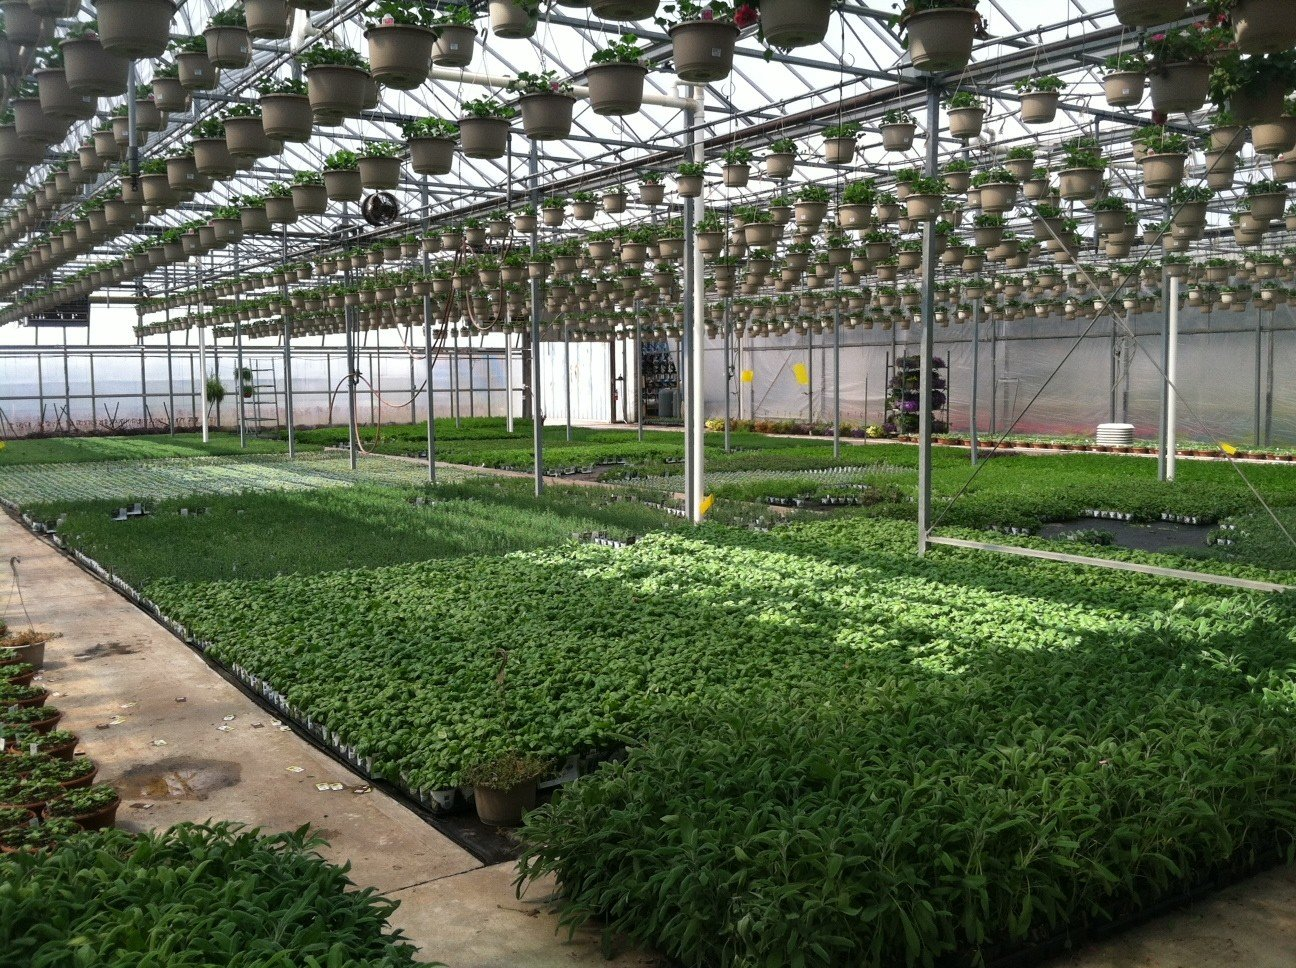 Greenhouse room gardens - From Grease To Grass Oil Speculation Cannabis Digest